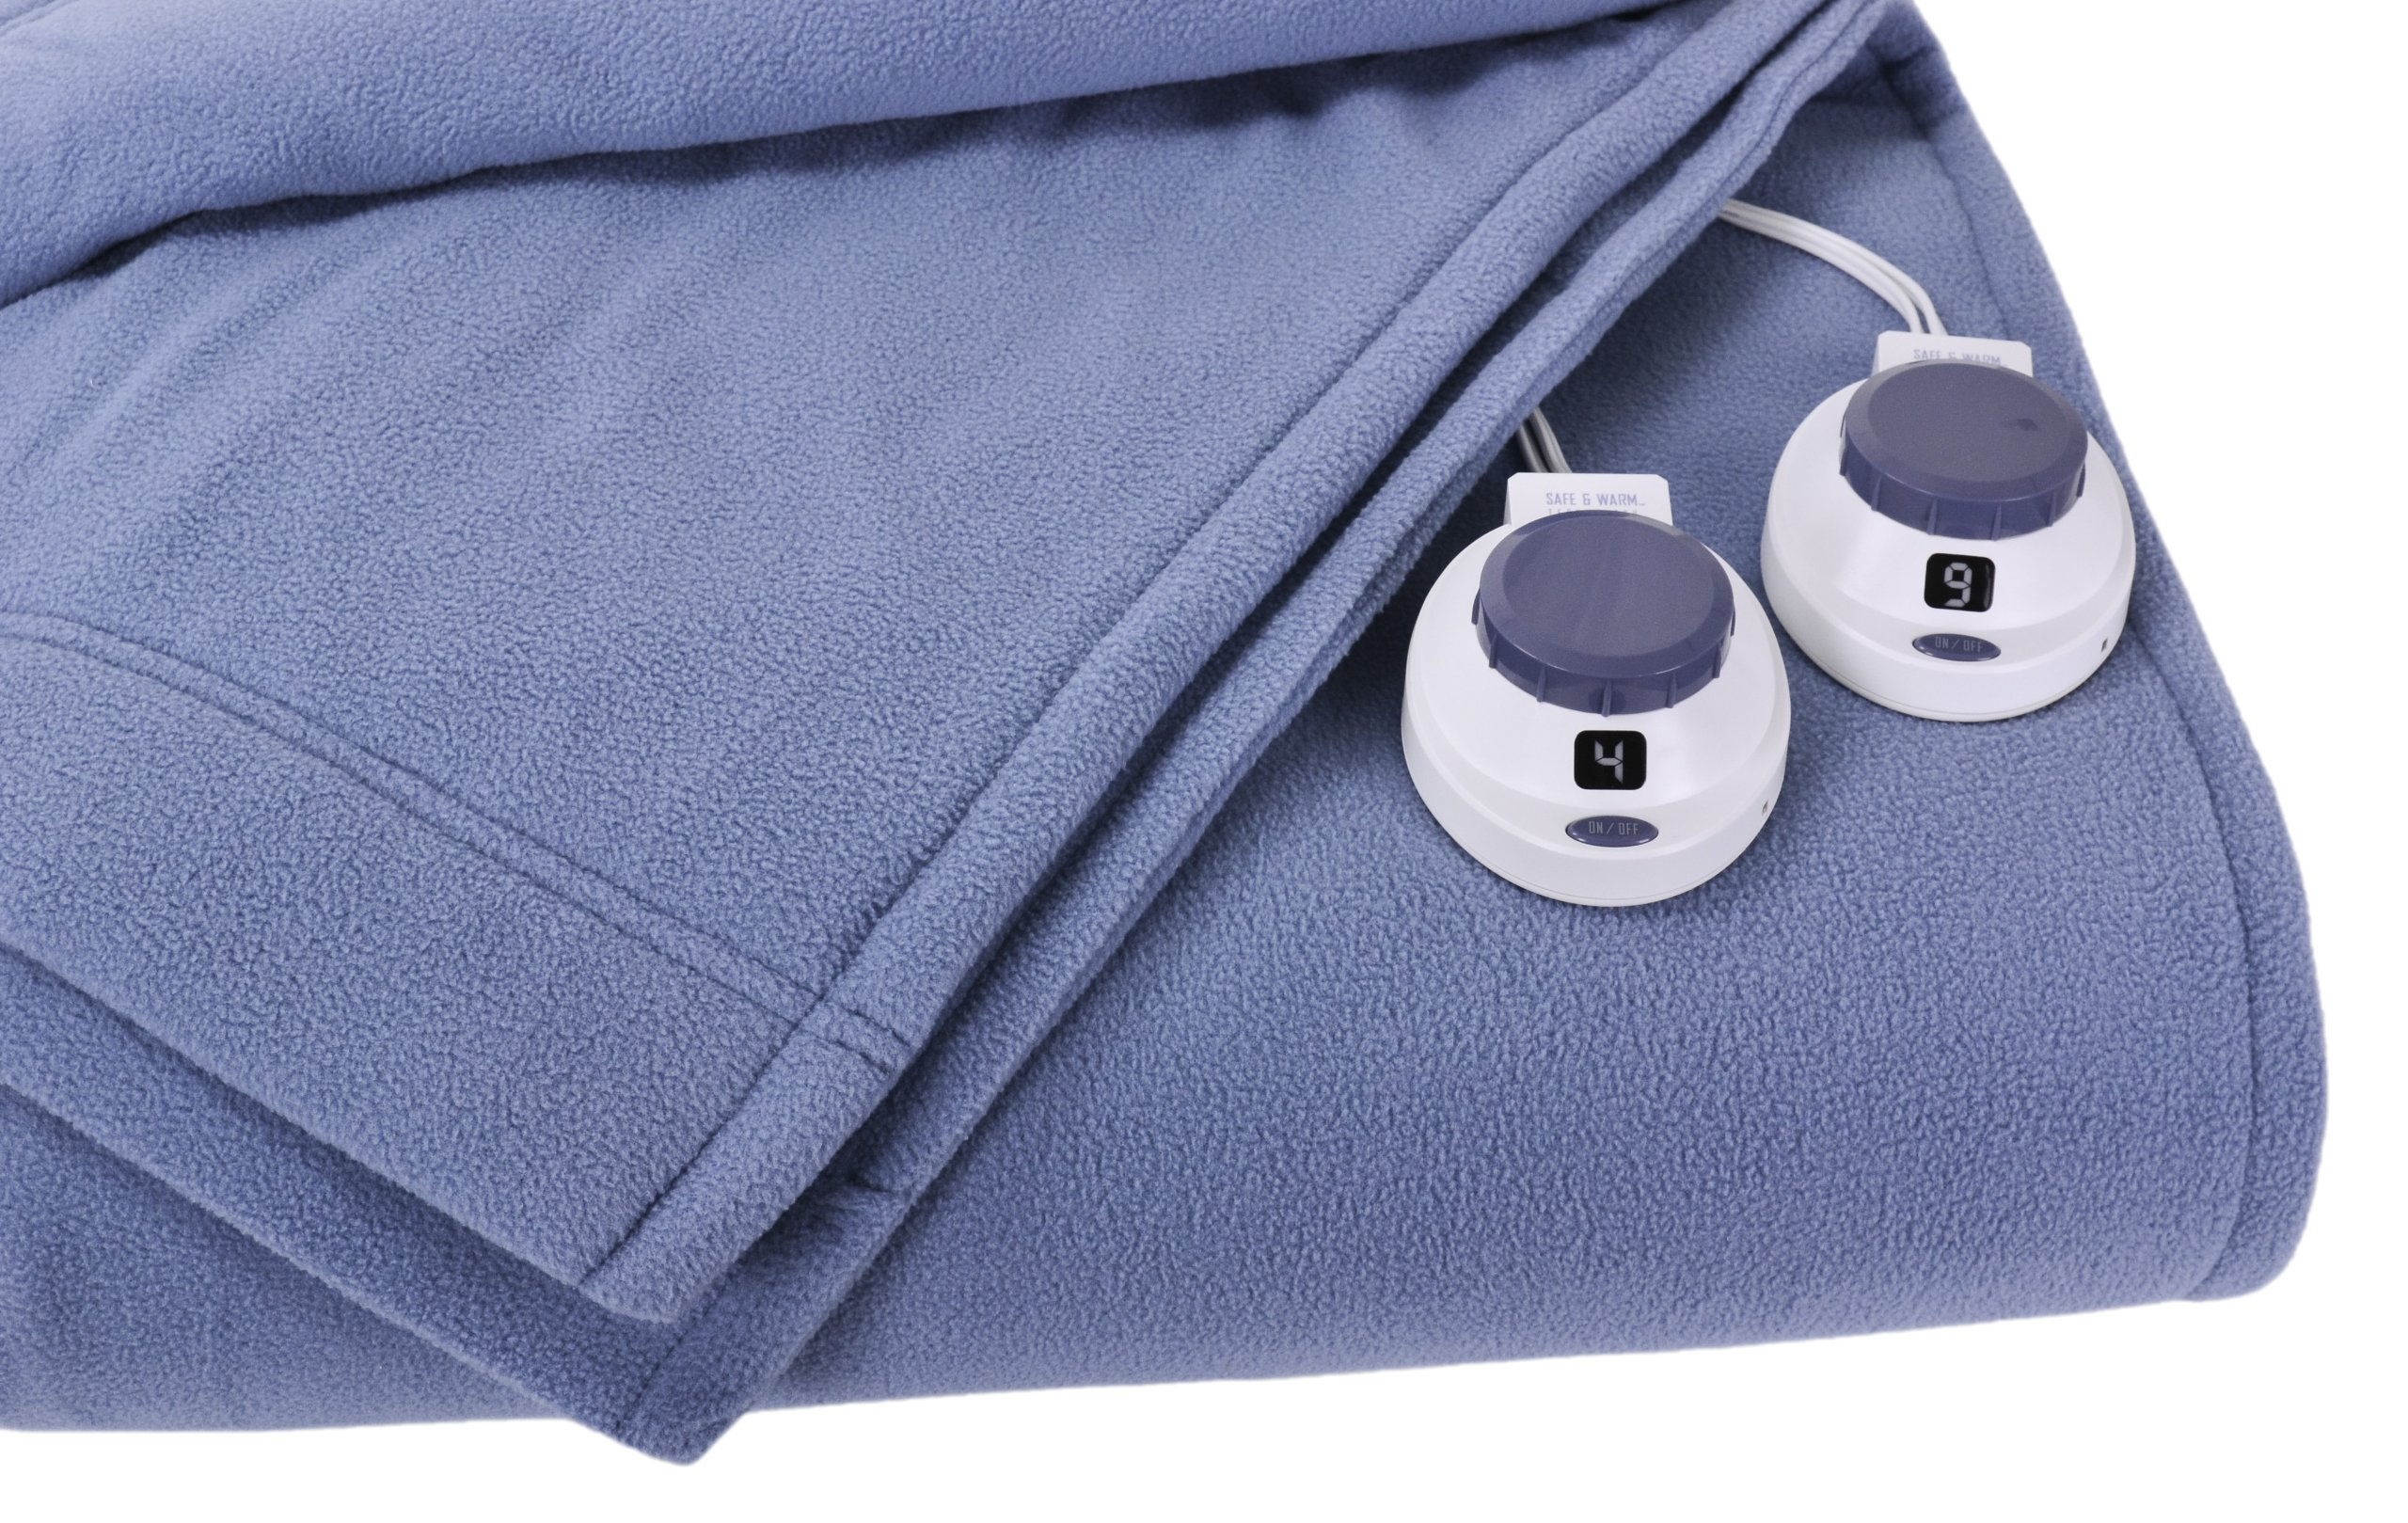 Soft Heat Luxury Micro-Fleece Low-Voltage Electric Heated Queen Size Blanket, Slate Blue by SoftHeat